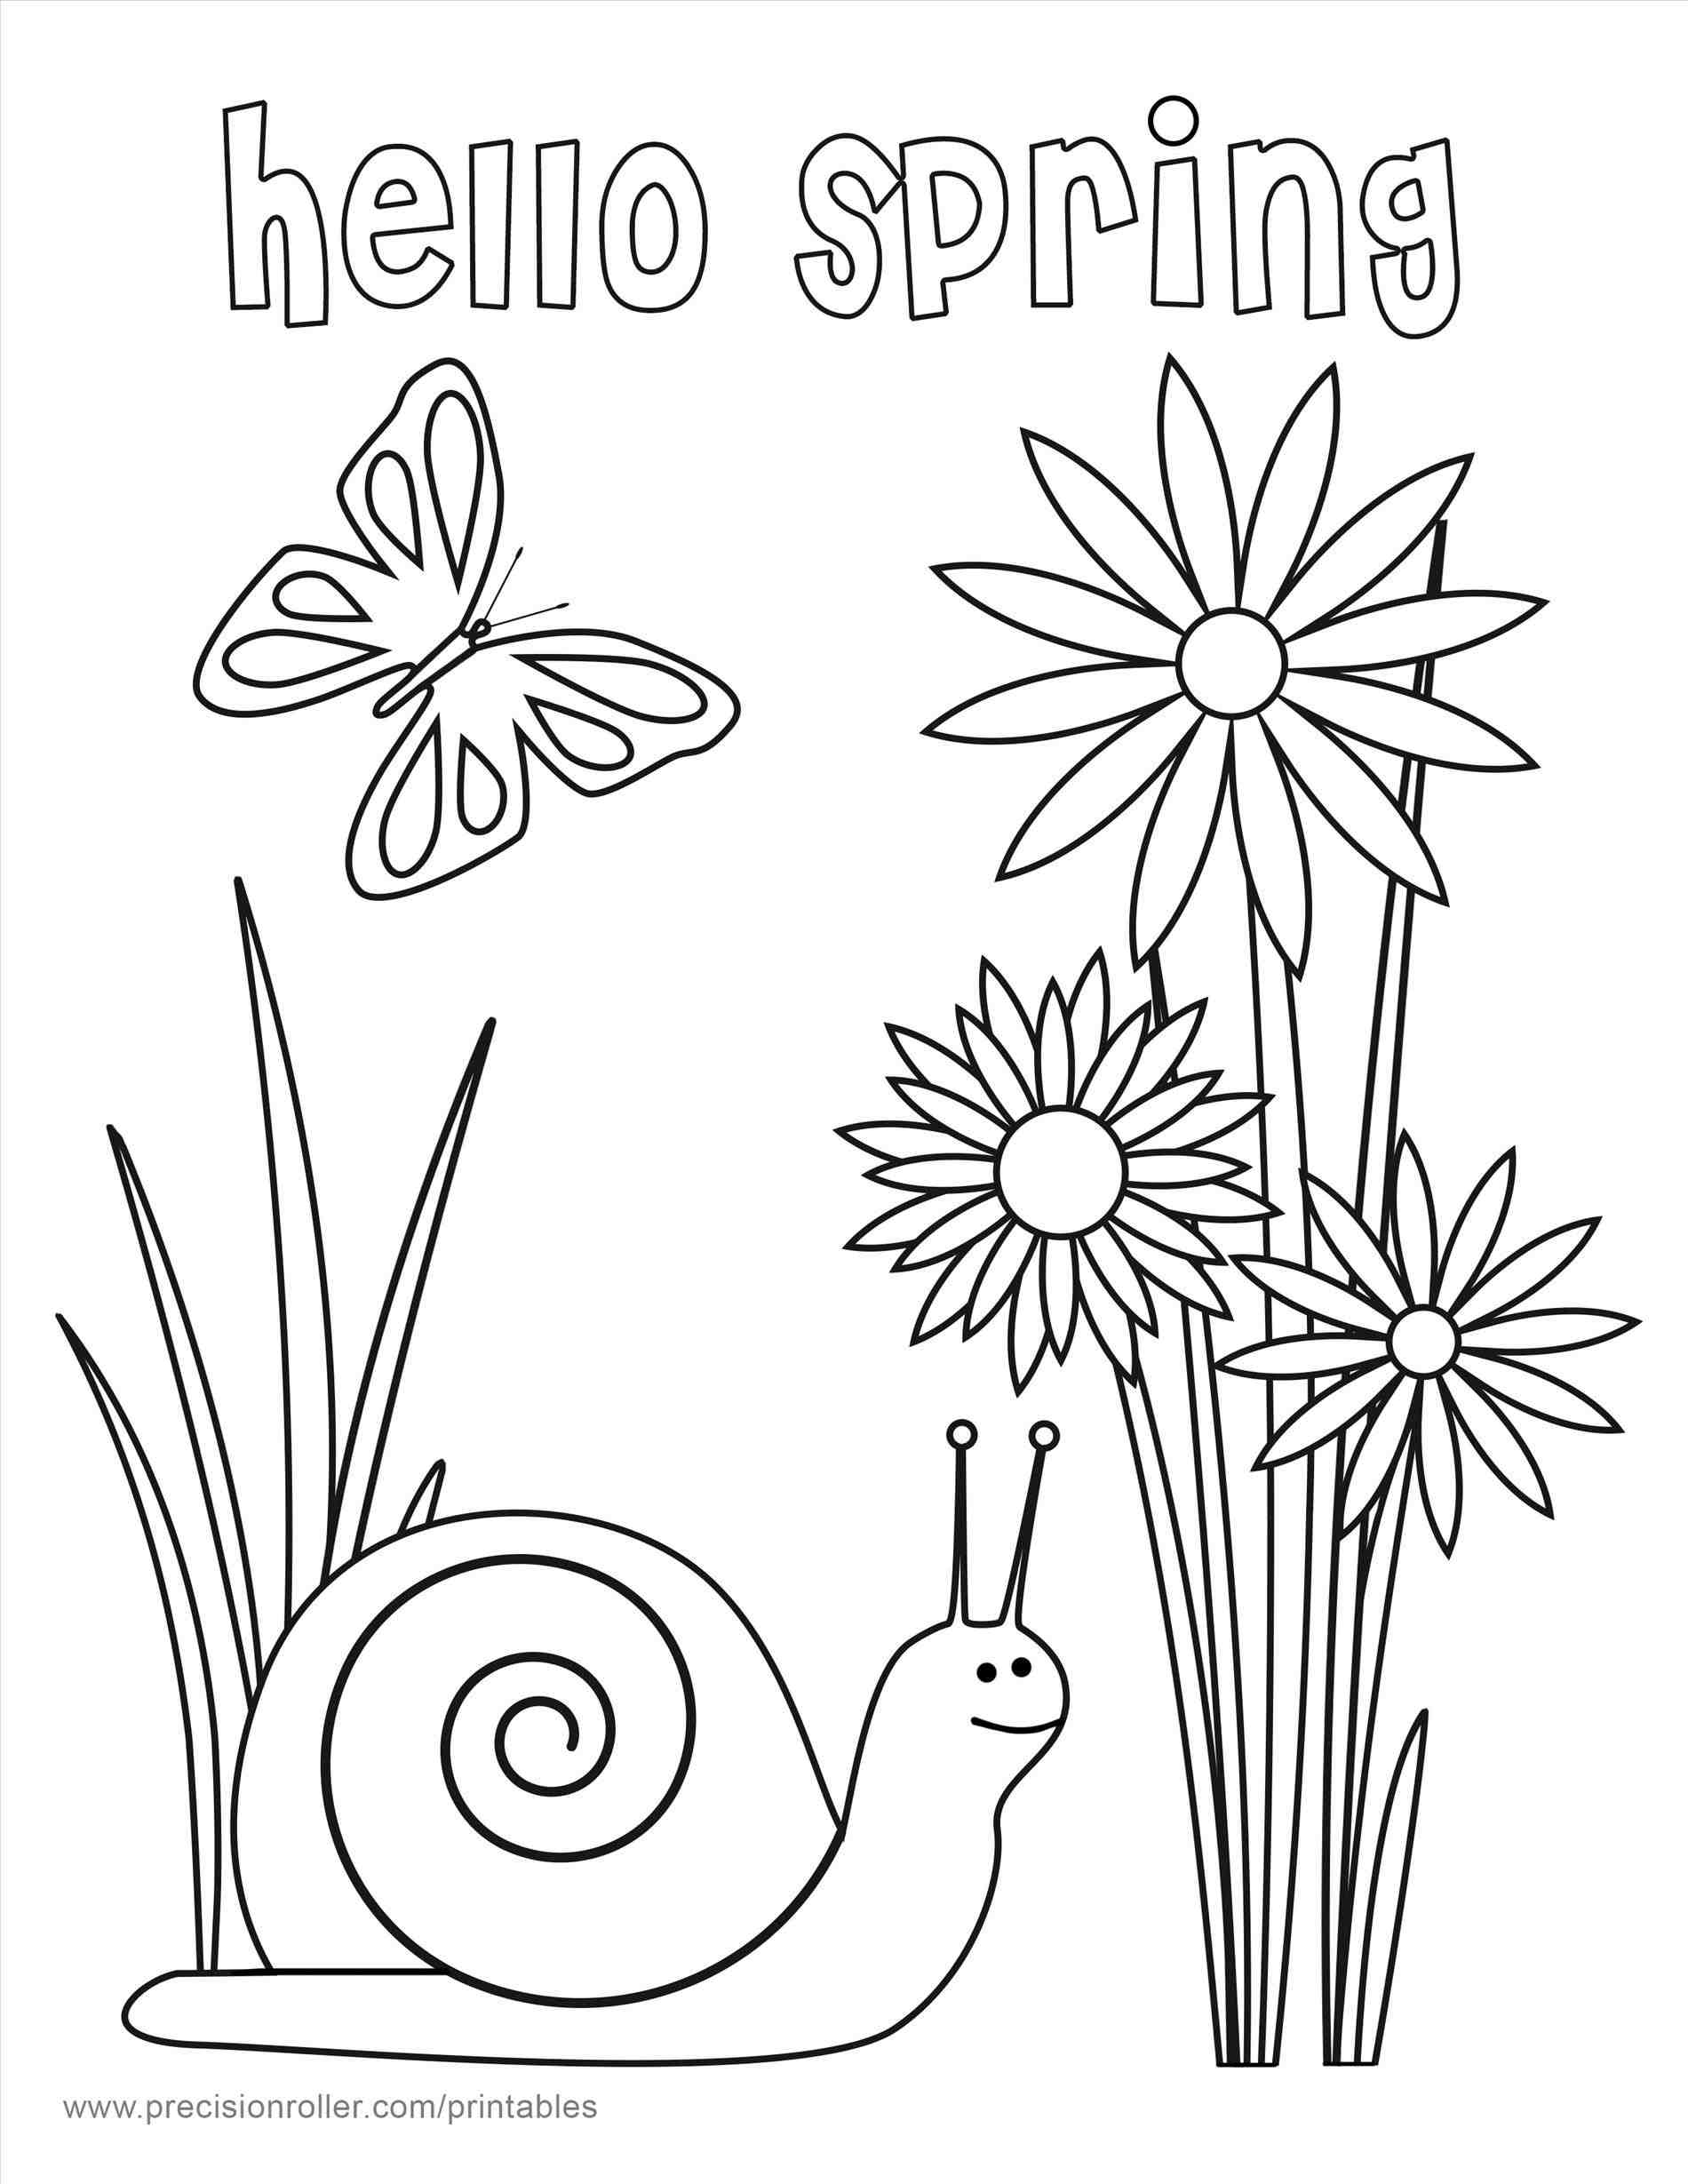 Fridge Coloring Page At Getcolorings